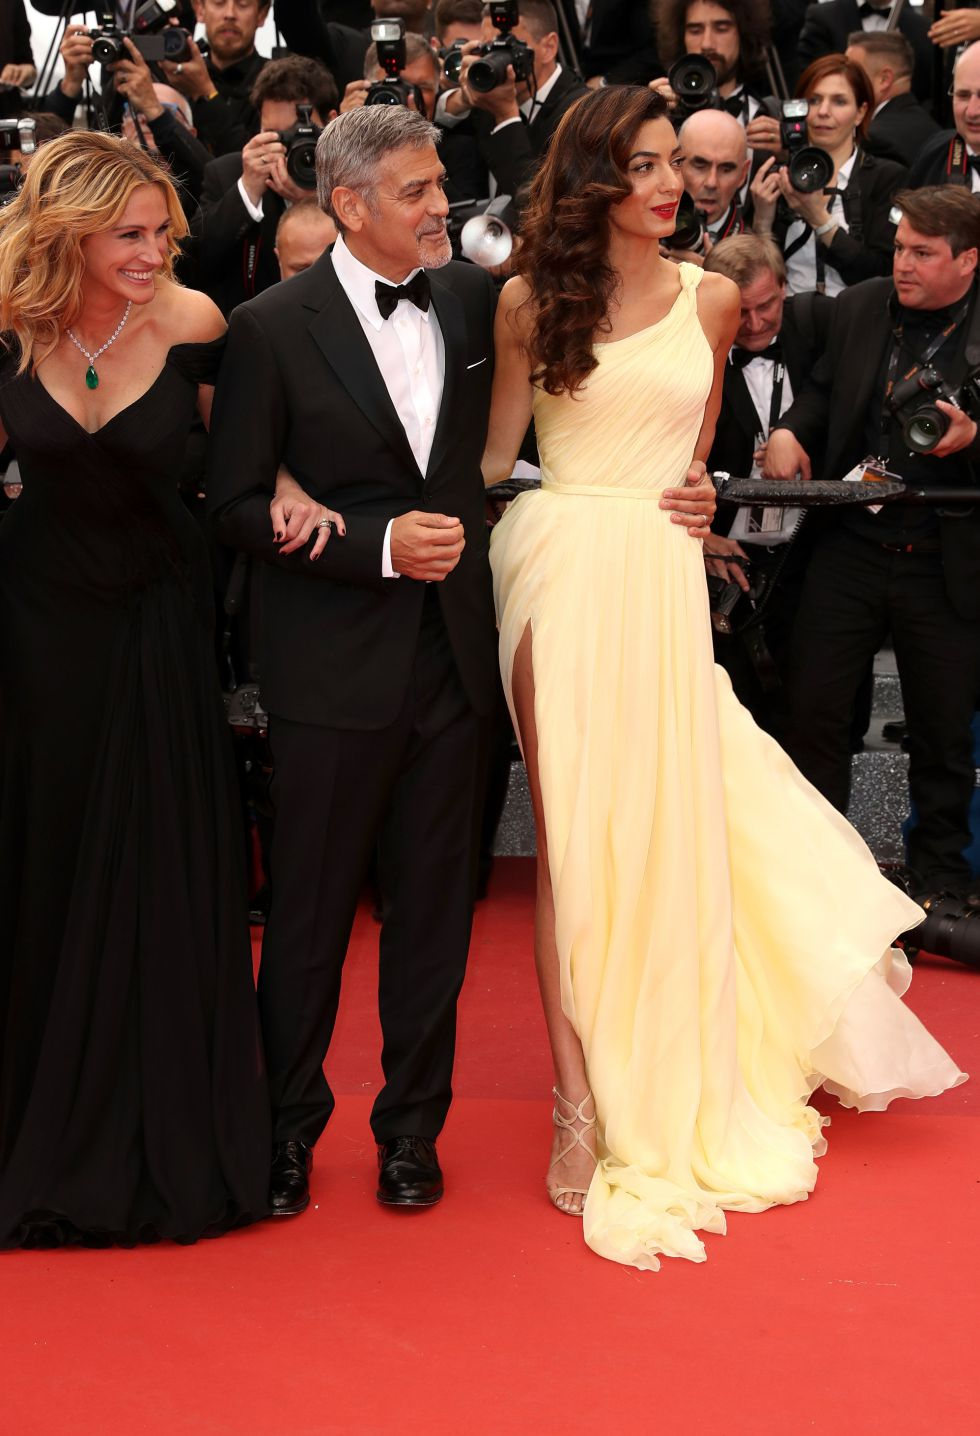 """CANNES, FRANCE - MAY 12: George Clooney and Amal Clooney attend the screening of """"Money Monster"""" at the annual 69th Cannes Film Festival at Palais des Festivals on May 12, 2016 in Cannes, France. (Photo by Luca Teuchmann/WireImage)"""